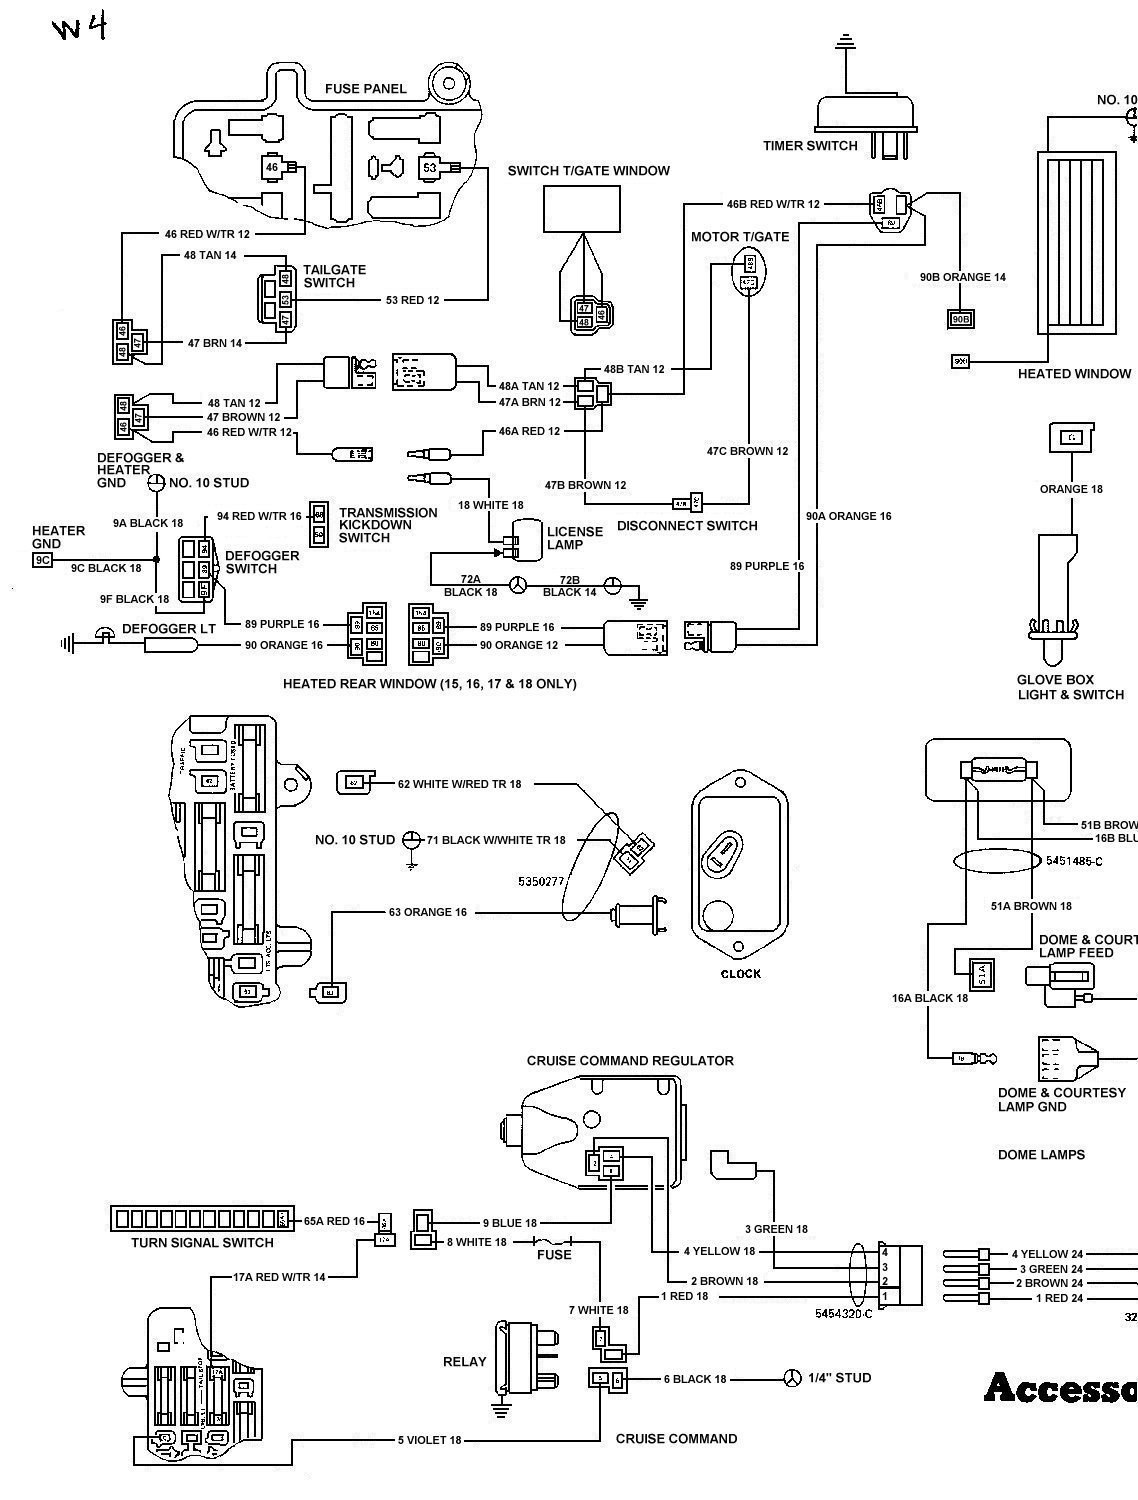 Jeep Cj7 Fuse Box Diagram 25 Wiring Images Cj5 78 Fsj Wiringdiagrampage4 Tom Oljeep Collins Page At Cita